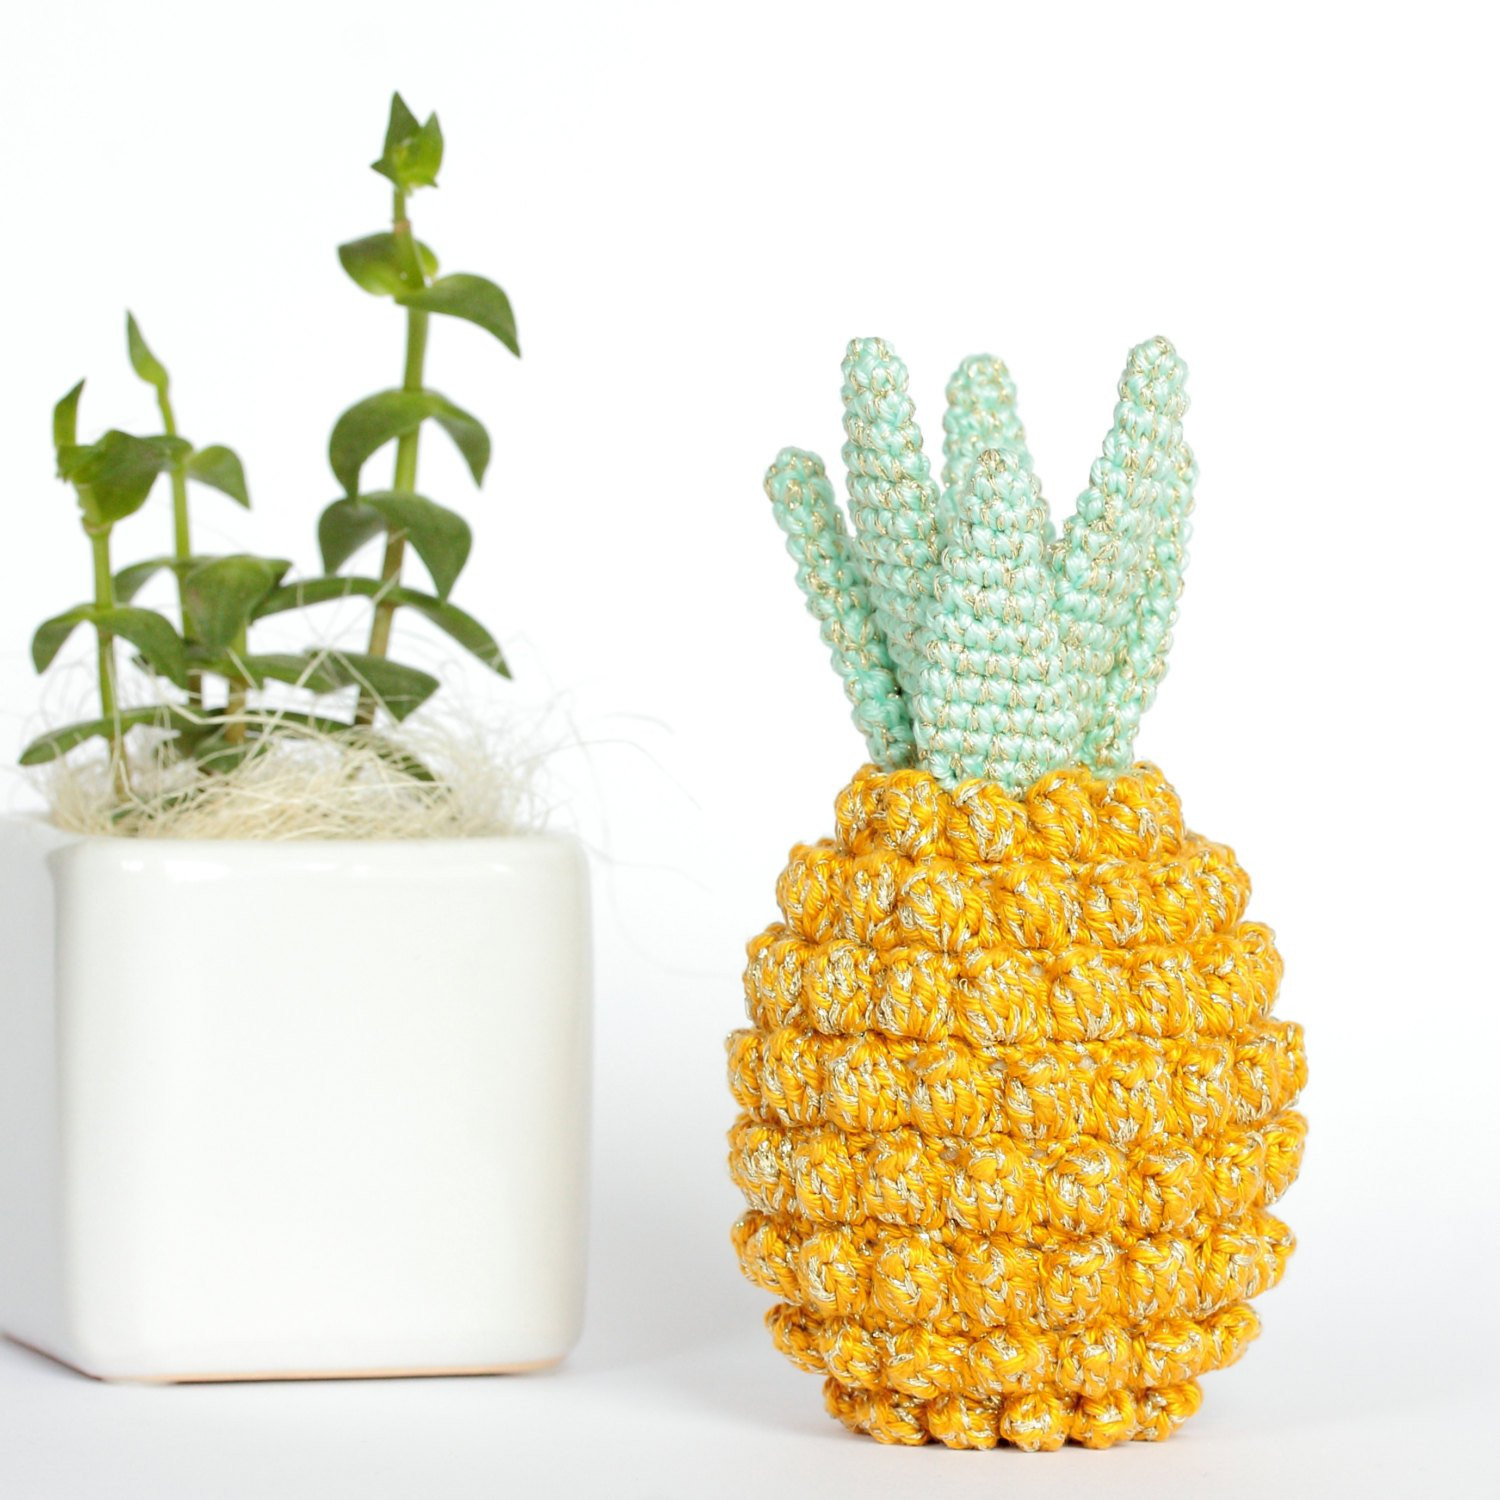 Pineapple Home Accessories New Crochet Pineapple Decor Pineapple Home Decor Pineapple Of Contemporary 40 Models Pineapple Home Accessories